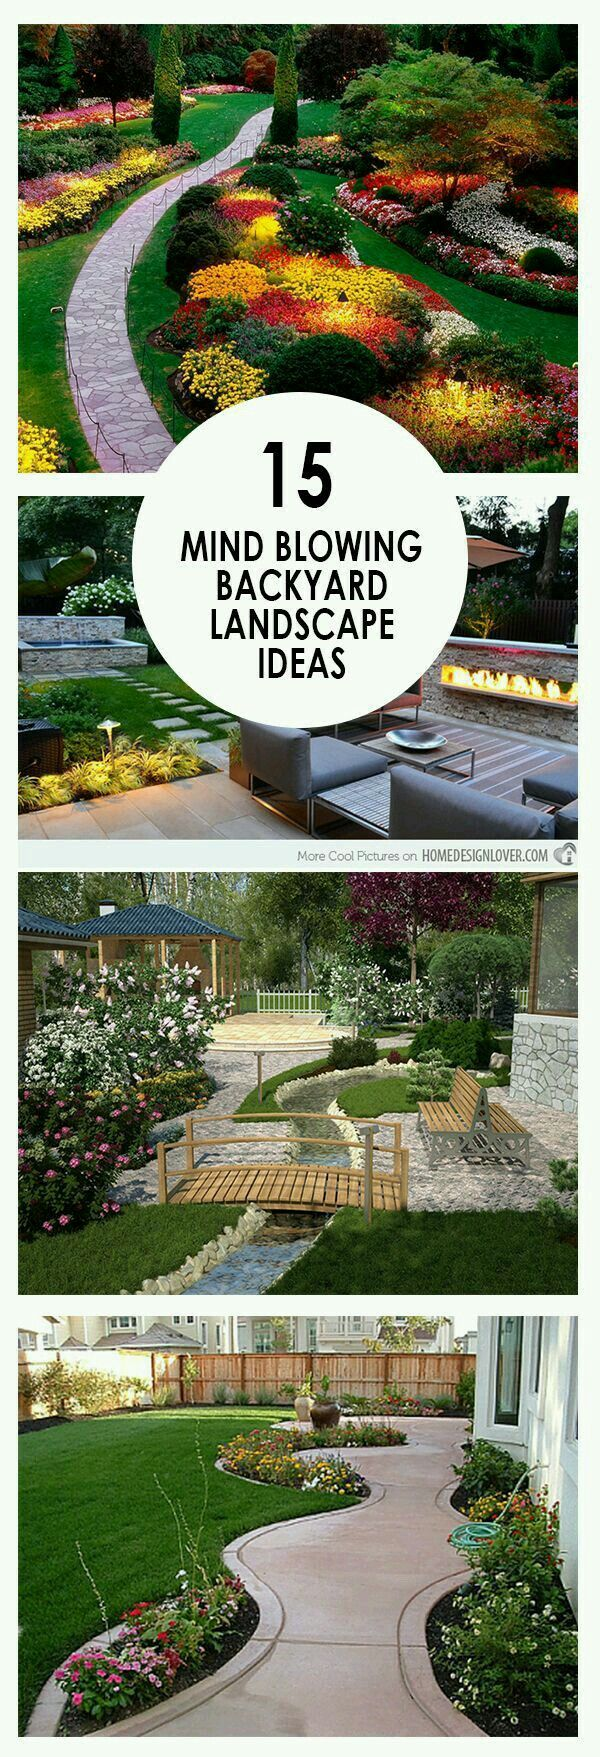 Landscapegarden garden ideas pinterest backyard landscaping landscapegarden workwithnaturefo